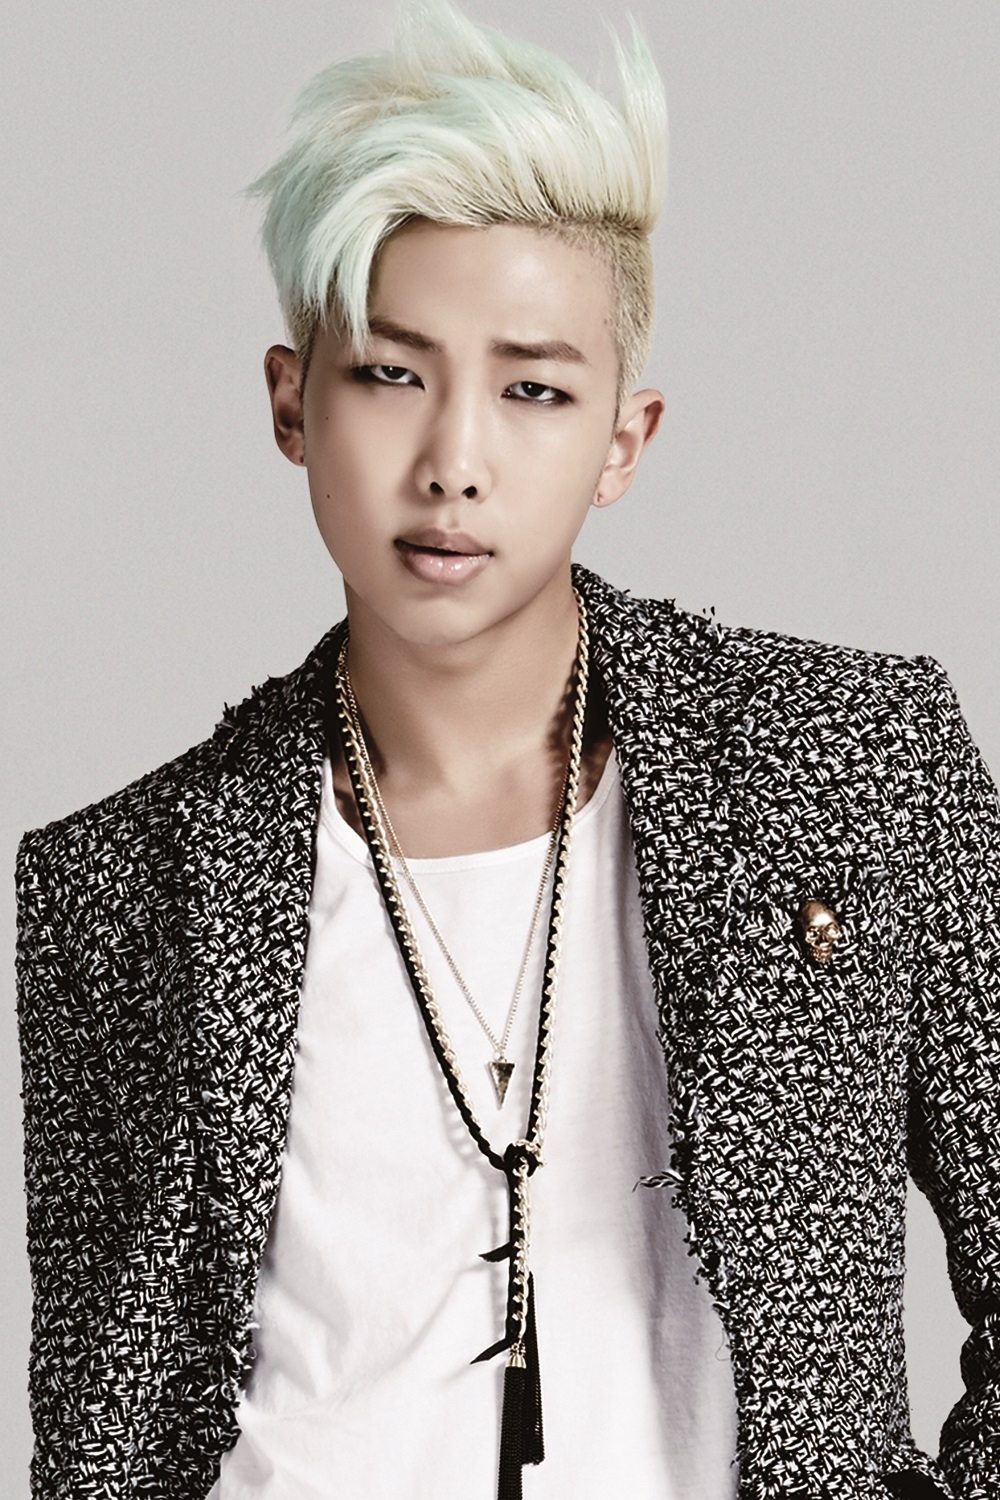 Rap Monster Android Iphone Wallpaper 2060 Asiachan Kpop Image Board